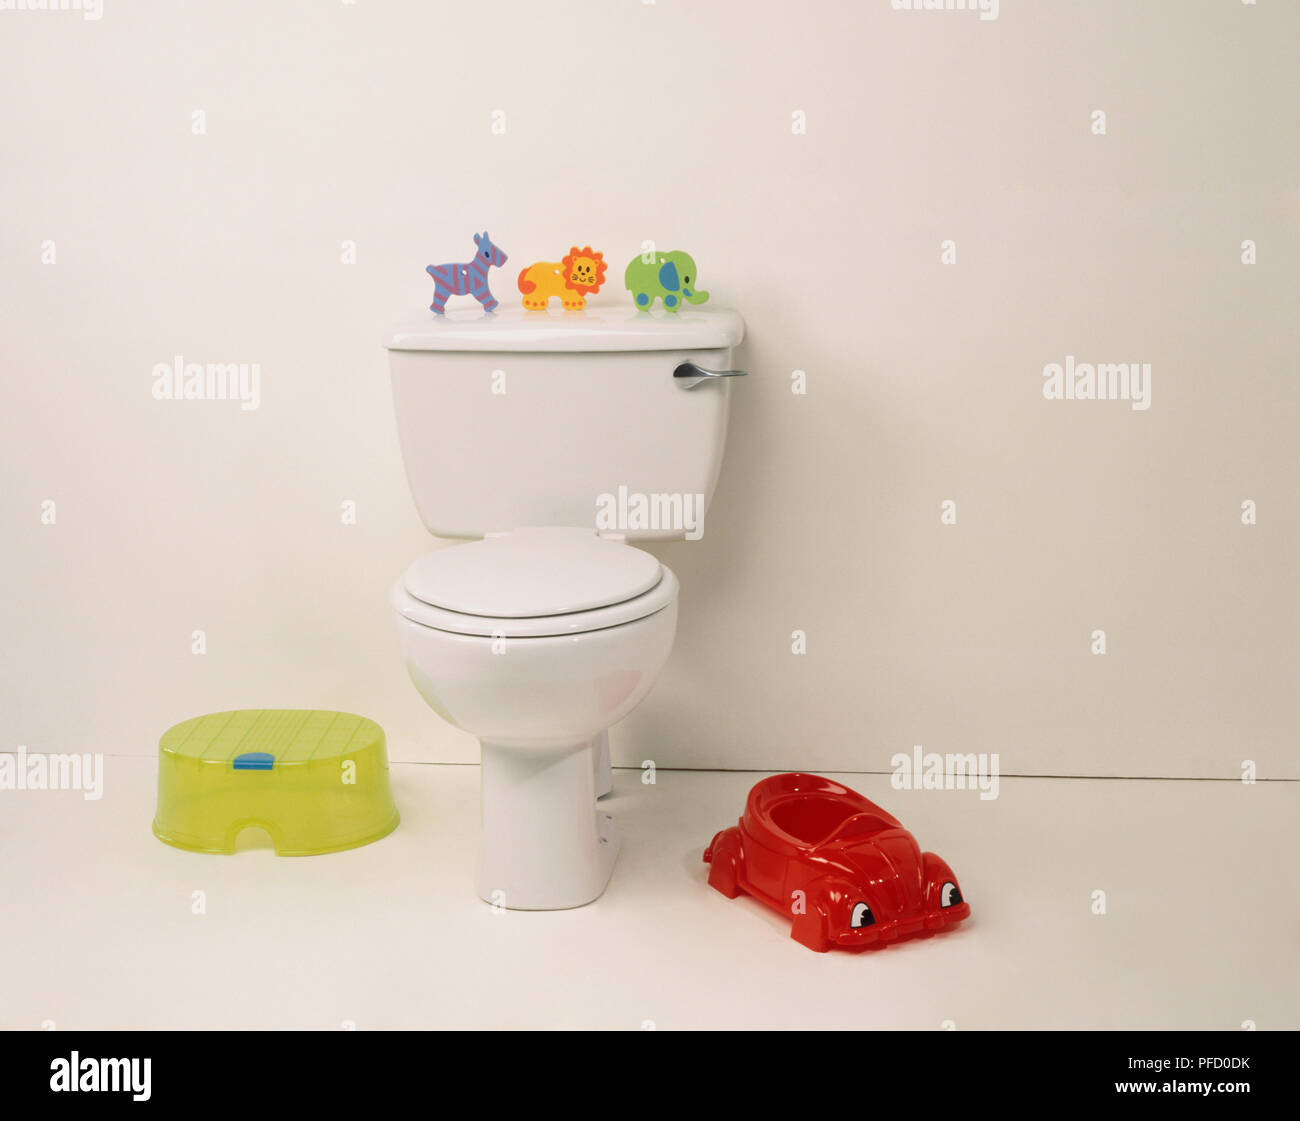 Tremendous White Toilet With Toy Zebra Lion And Elephant Placed On Beatyapartments Chair Design Images Beatyapartmentscom